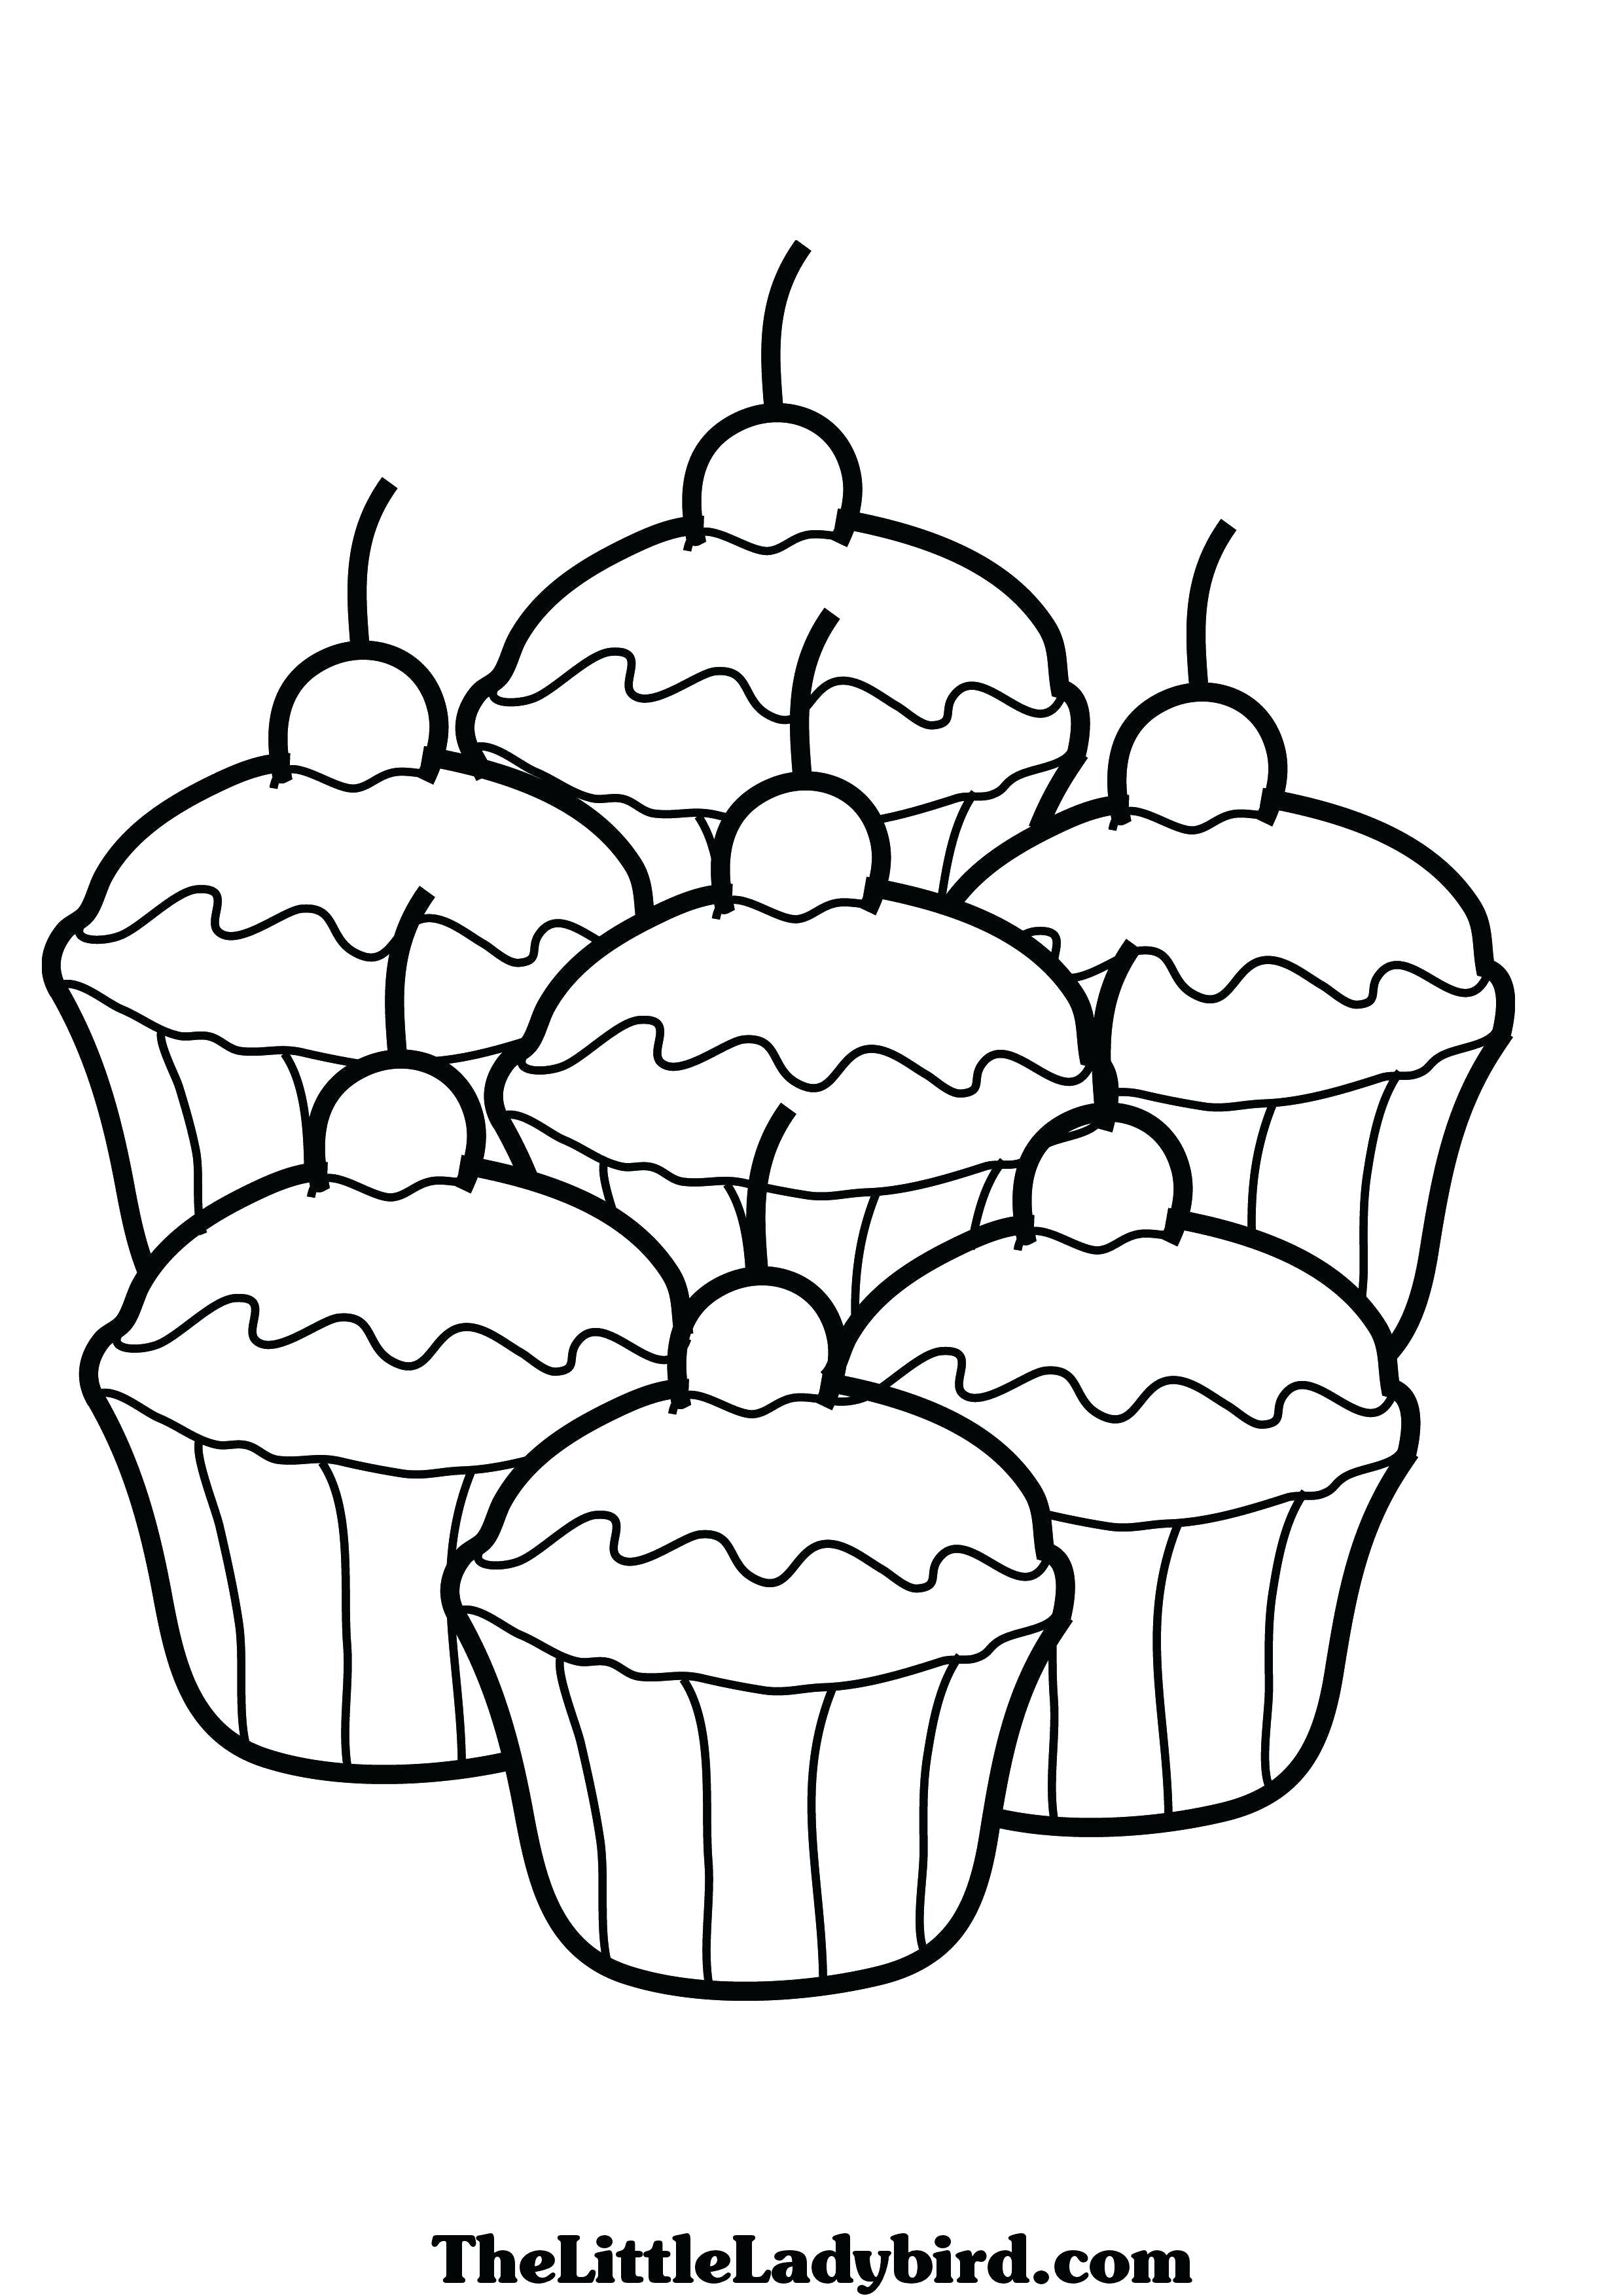 2480x3508 Cupcake Coloring Pages To Print Resume